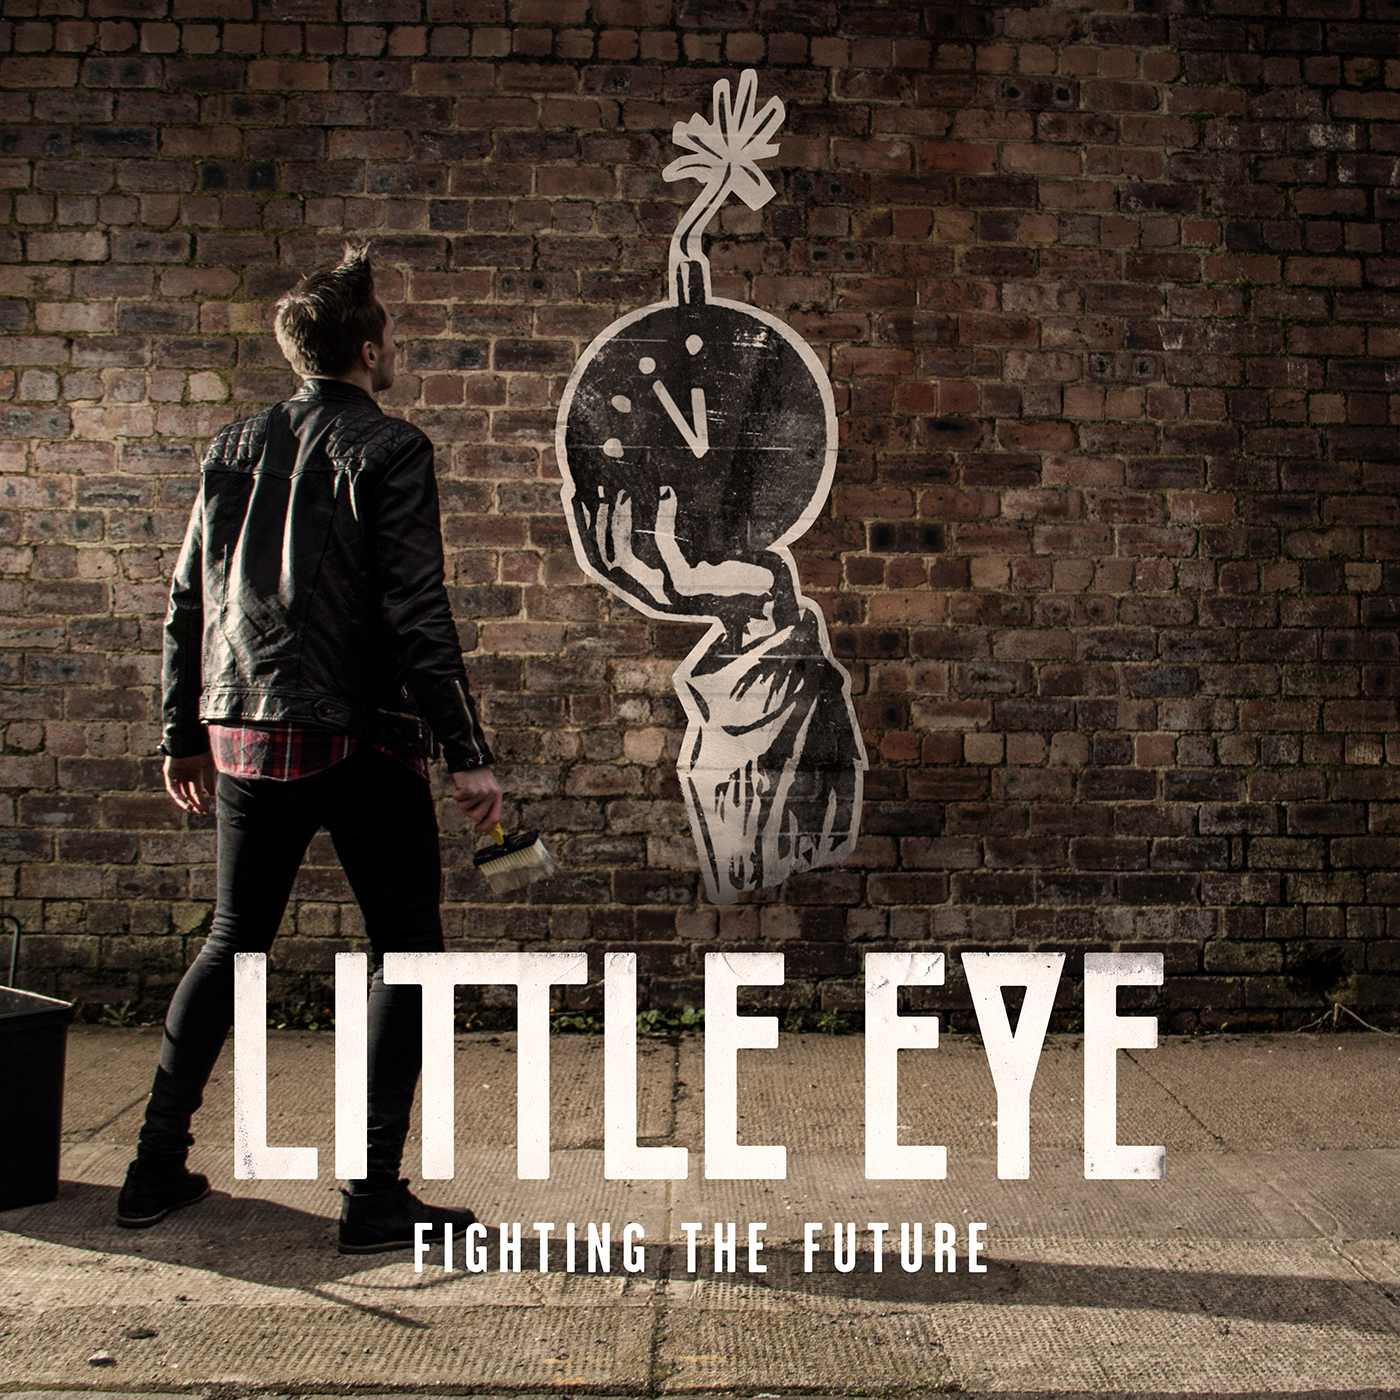 FIGHTING THE FUTURE - Debut album